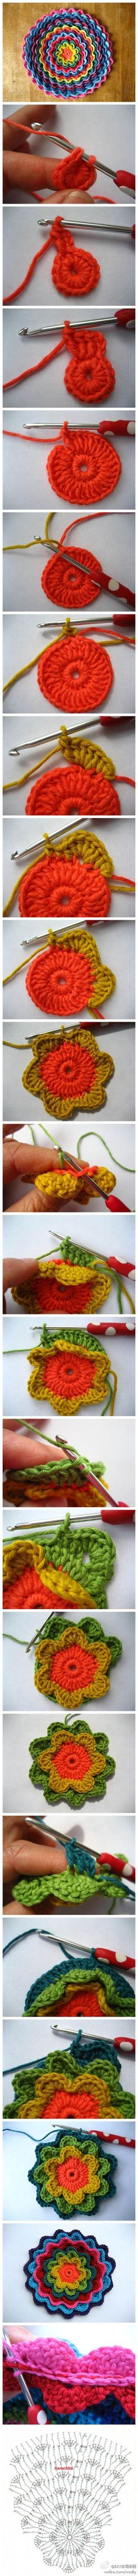 Crochet Flower - Tutorial  I would be so happy if someone made a whole smack of these cool, colourful flowers, and then put them on all kinds of cool, colourful squares and ultimately -- make me a lovely blanket.  Any takers?